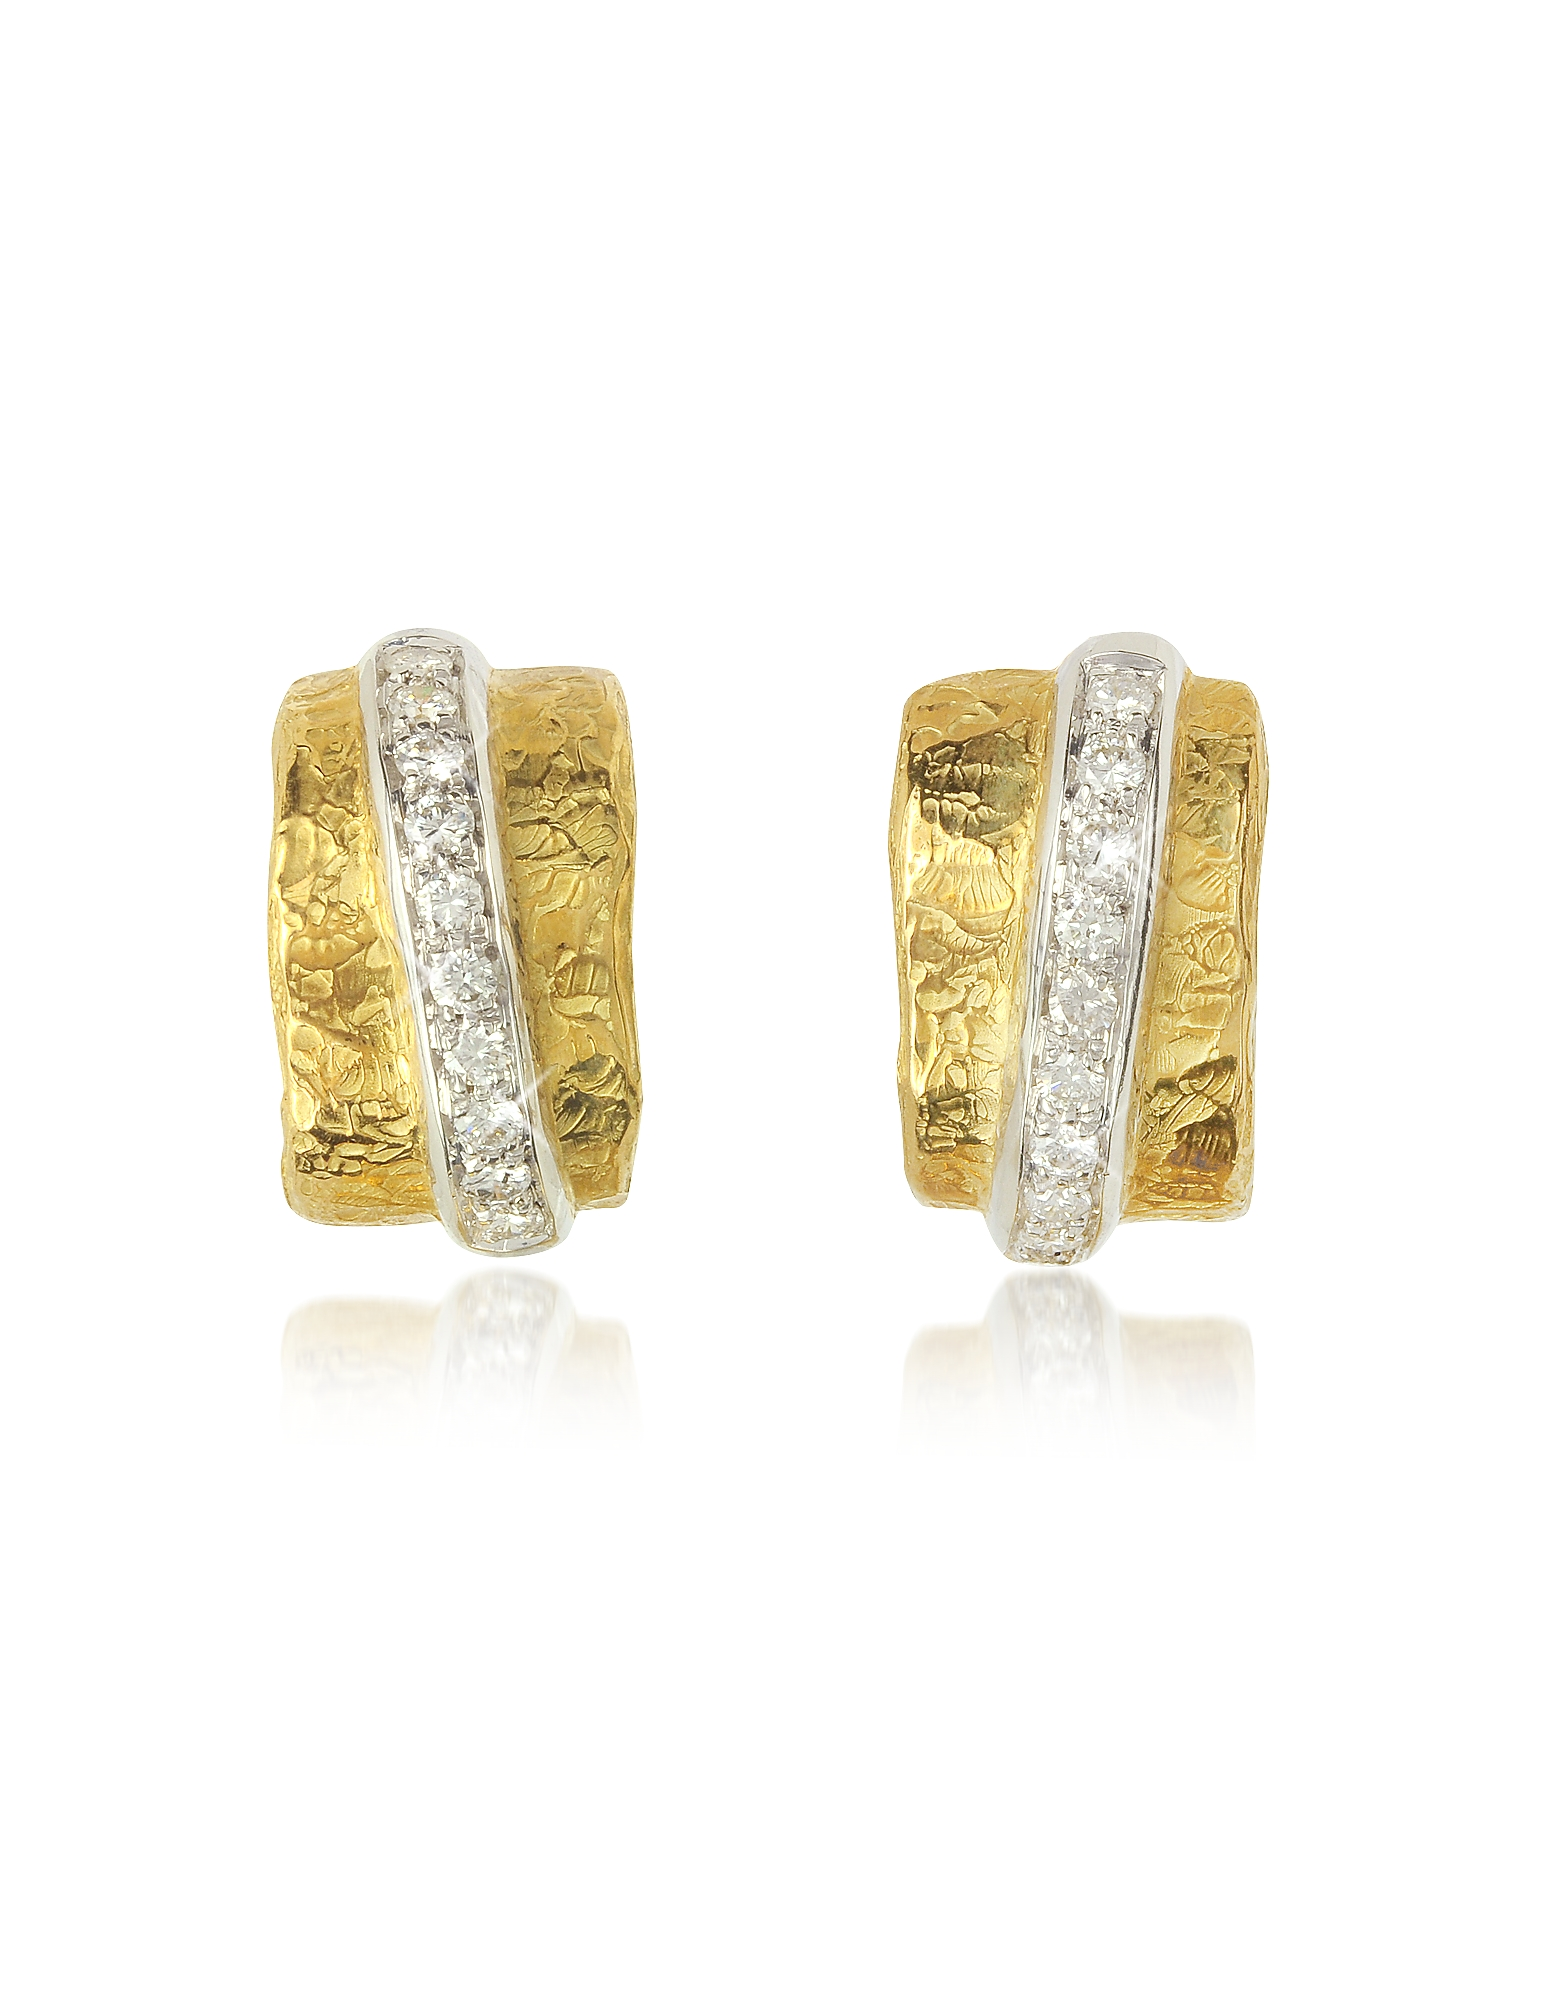 Torrini Earrings, Nancy - 18K Yellow Gold and Diamond Earrings